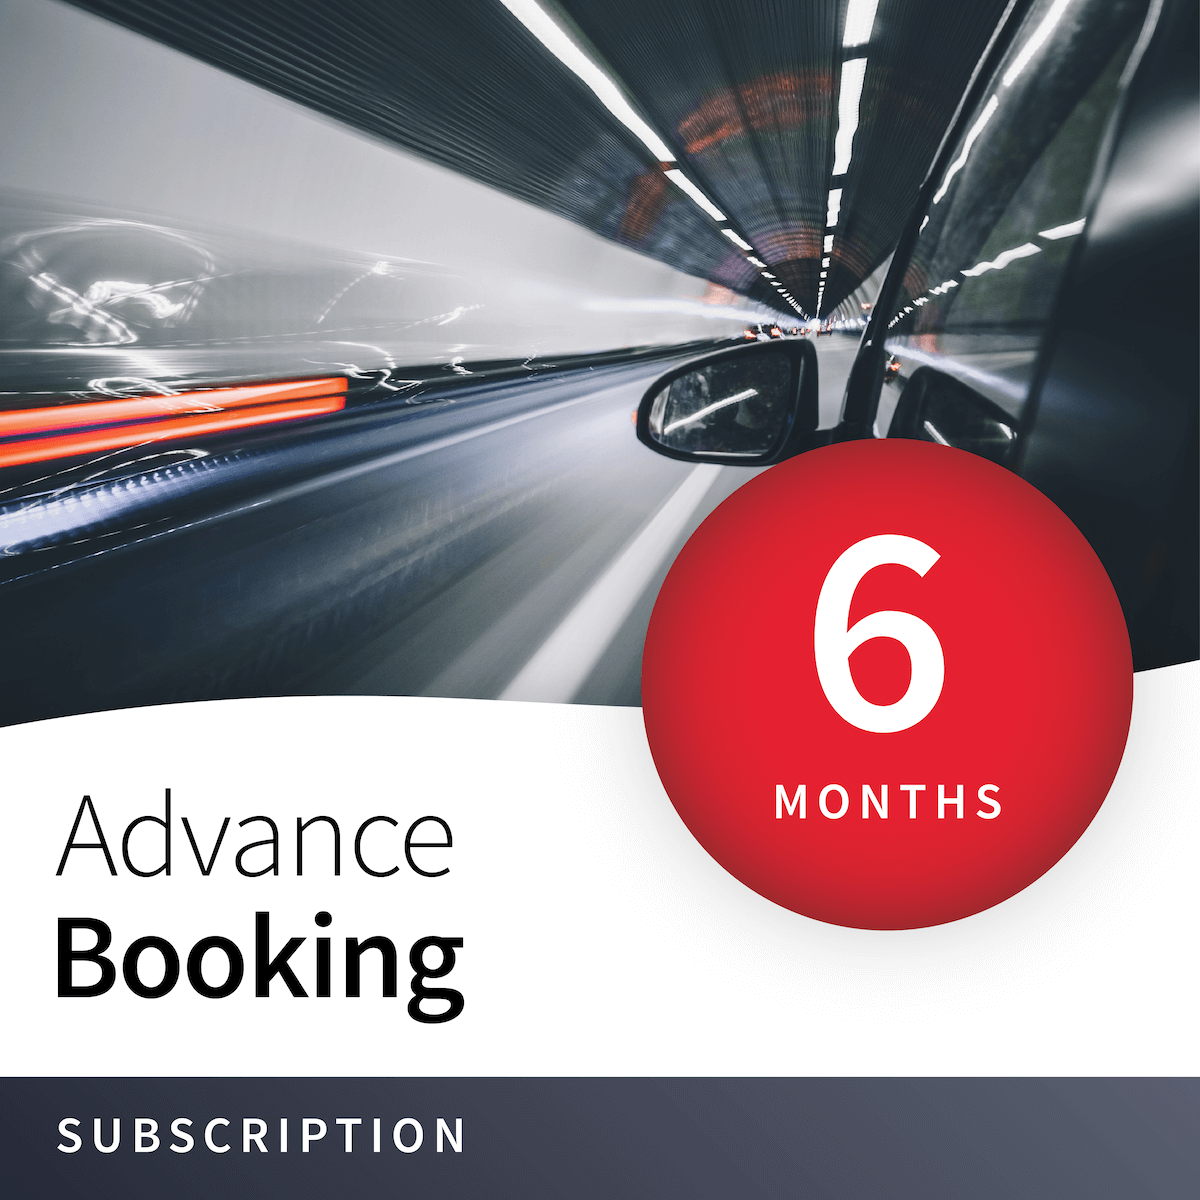 Priority Advance Booking - 6 Months 21